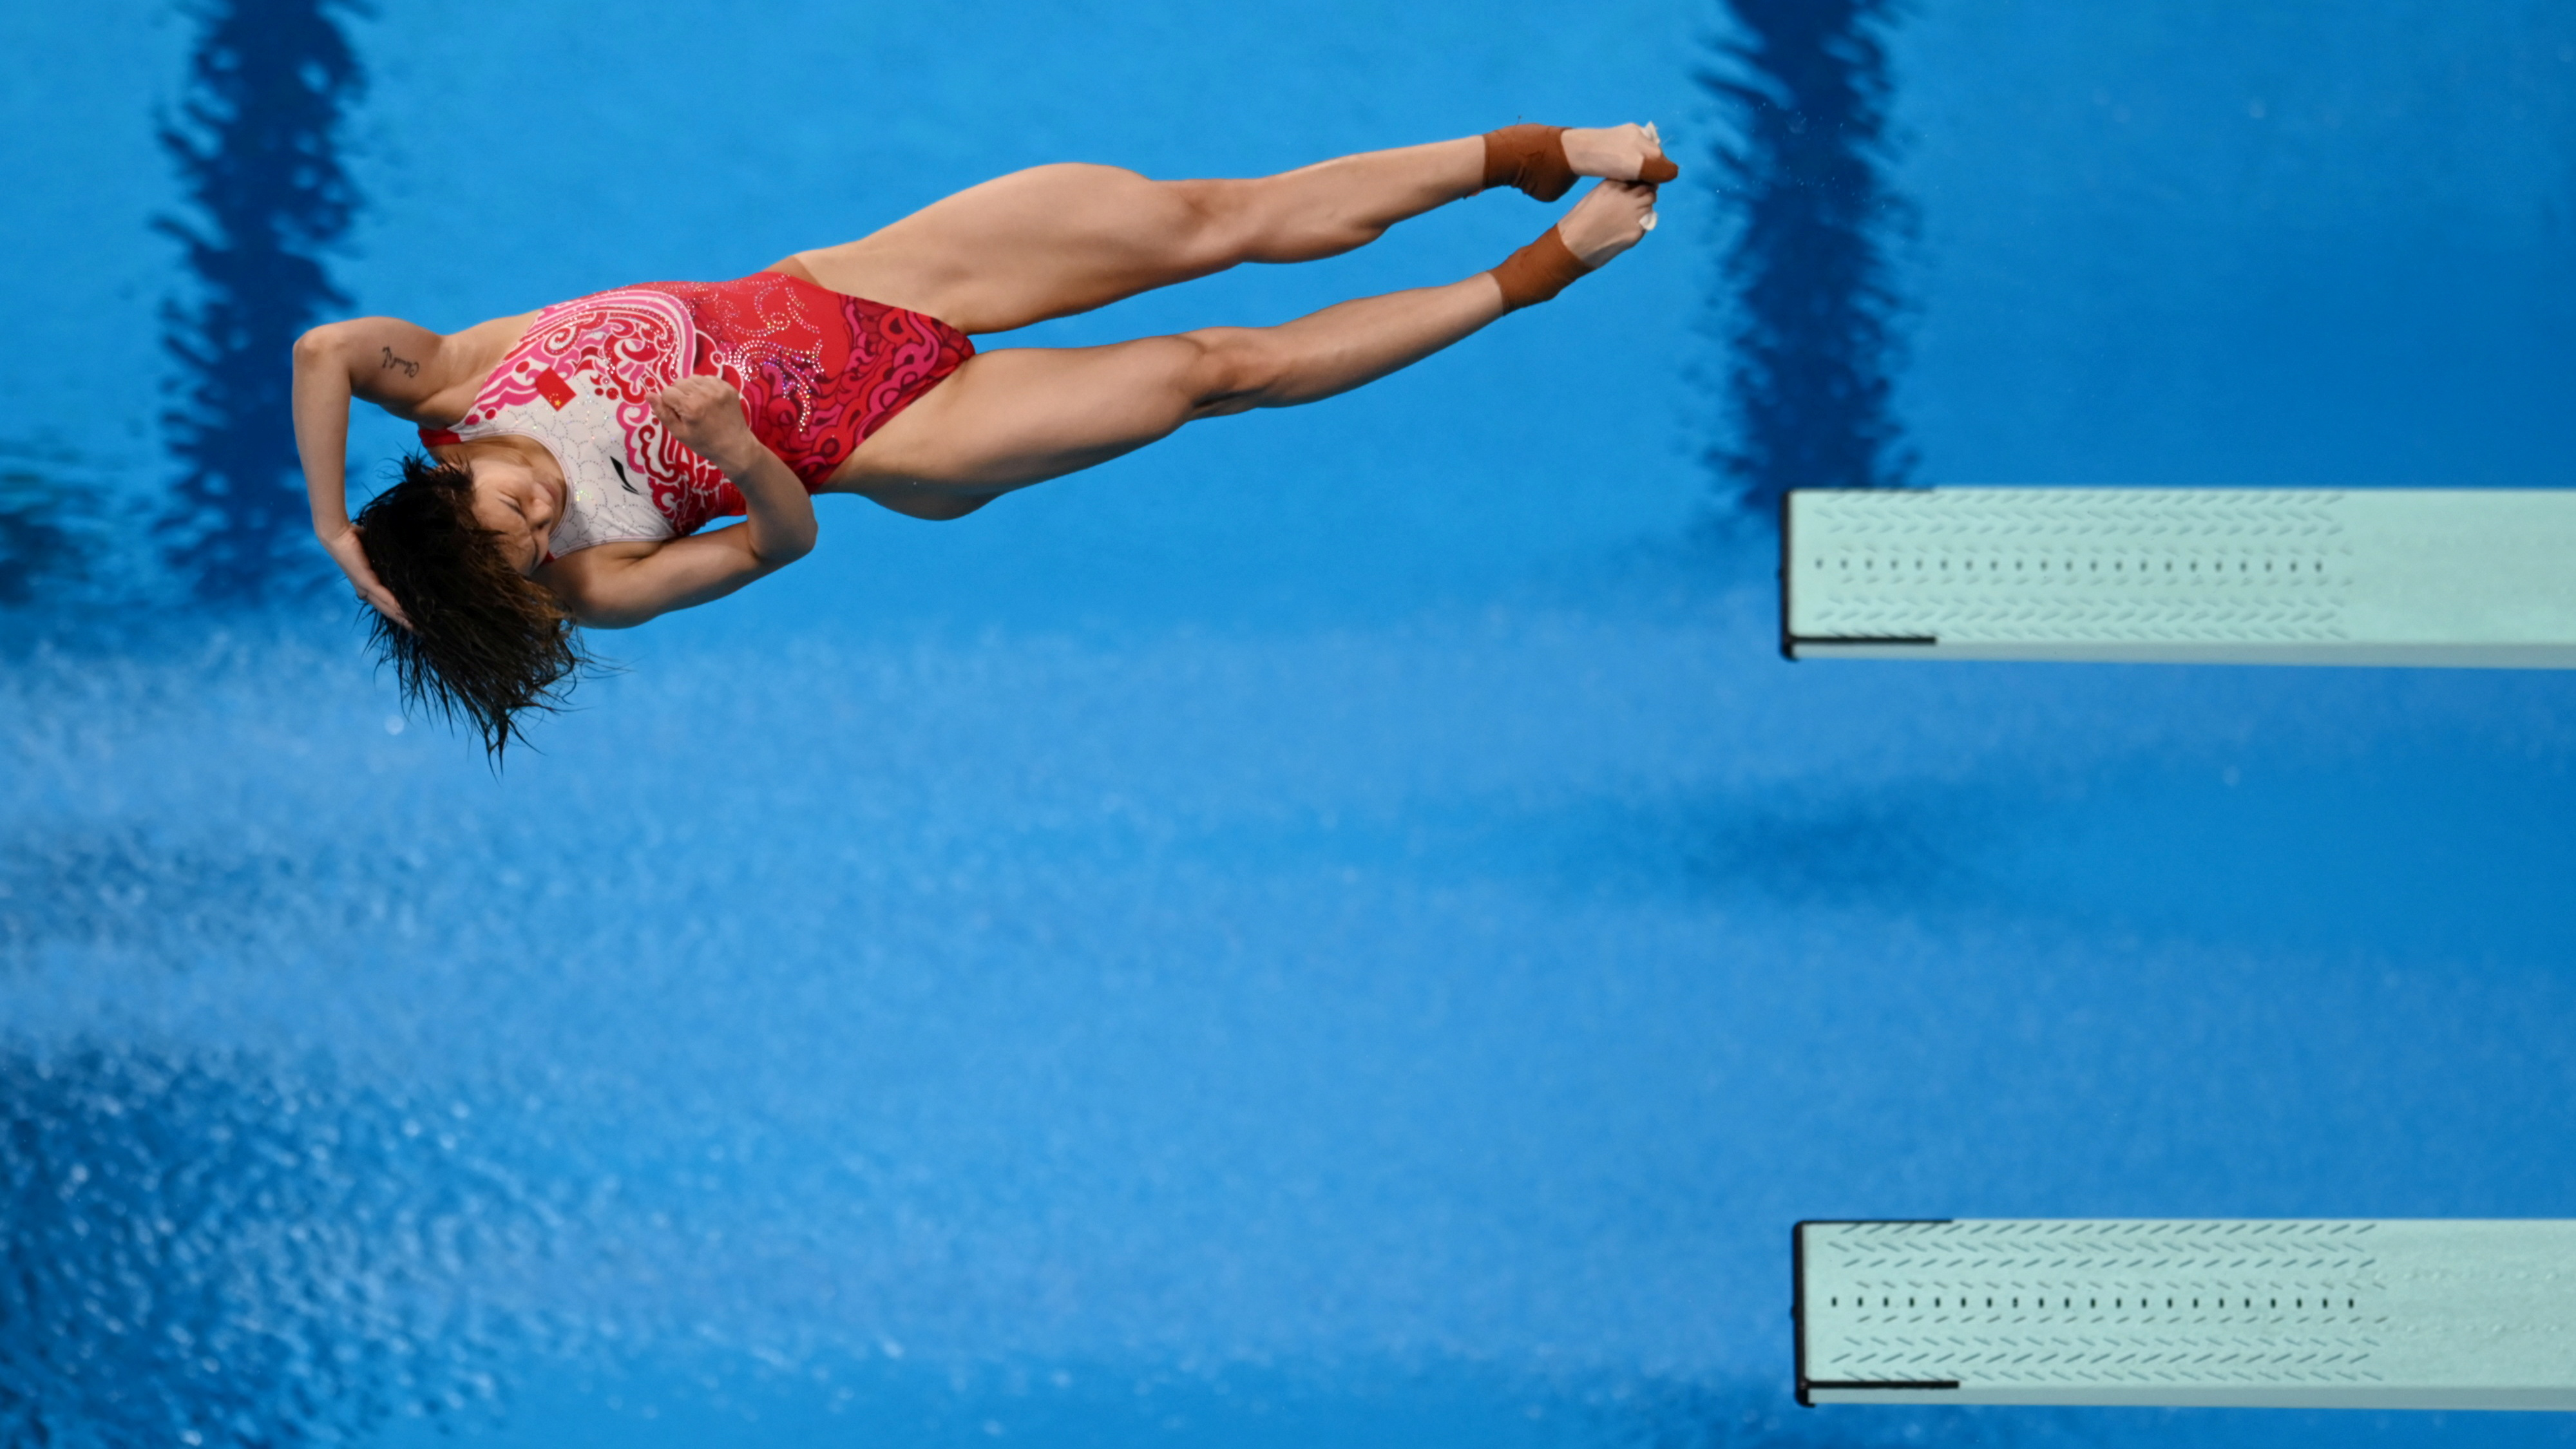 Tokyo 2020 Olympics - Diving - Women's 3m Springboard - Final - Tokyo Aquatics Centre, Tokyo, Japan - August 1, 2021. Tingmao Shi of China in action during the last dive REUTERS/Annegret Hilse